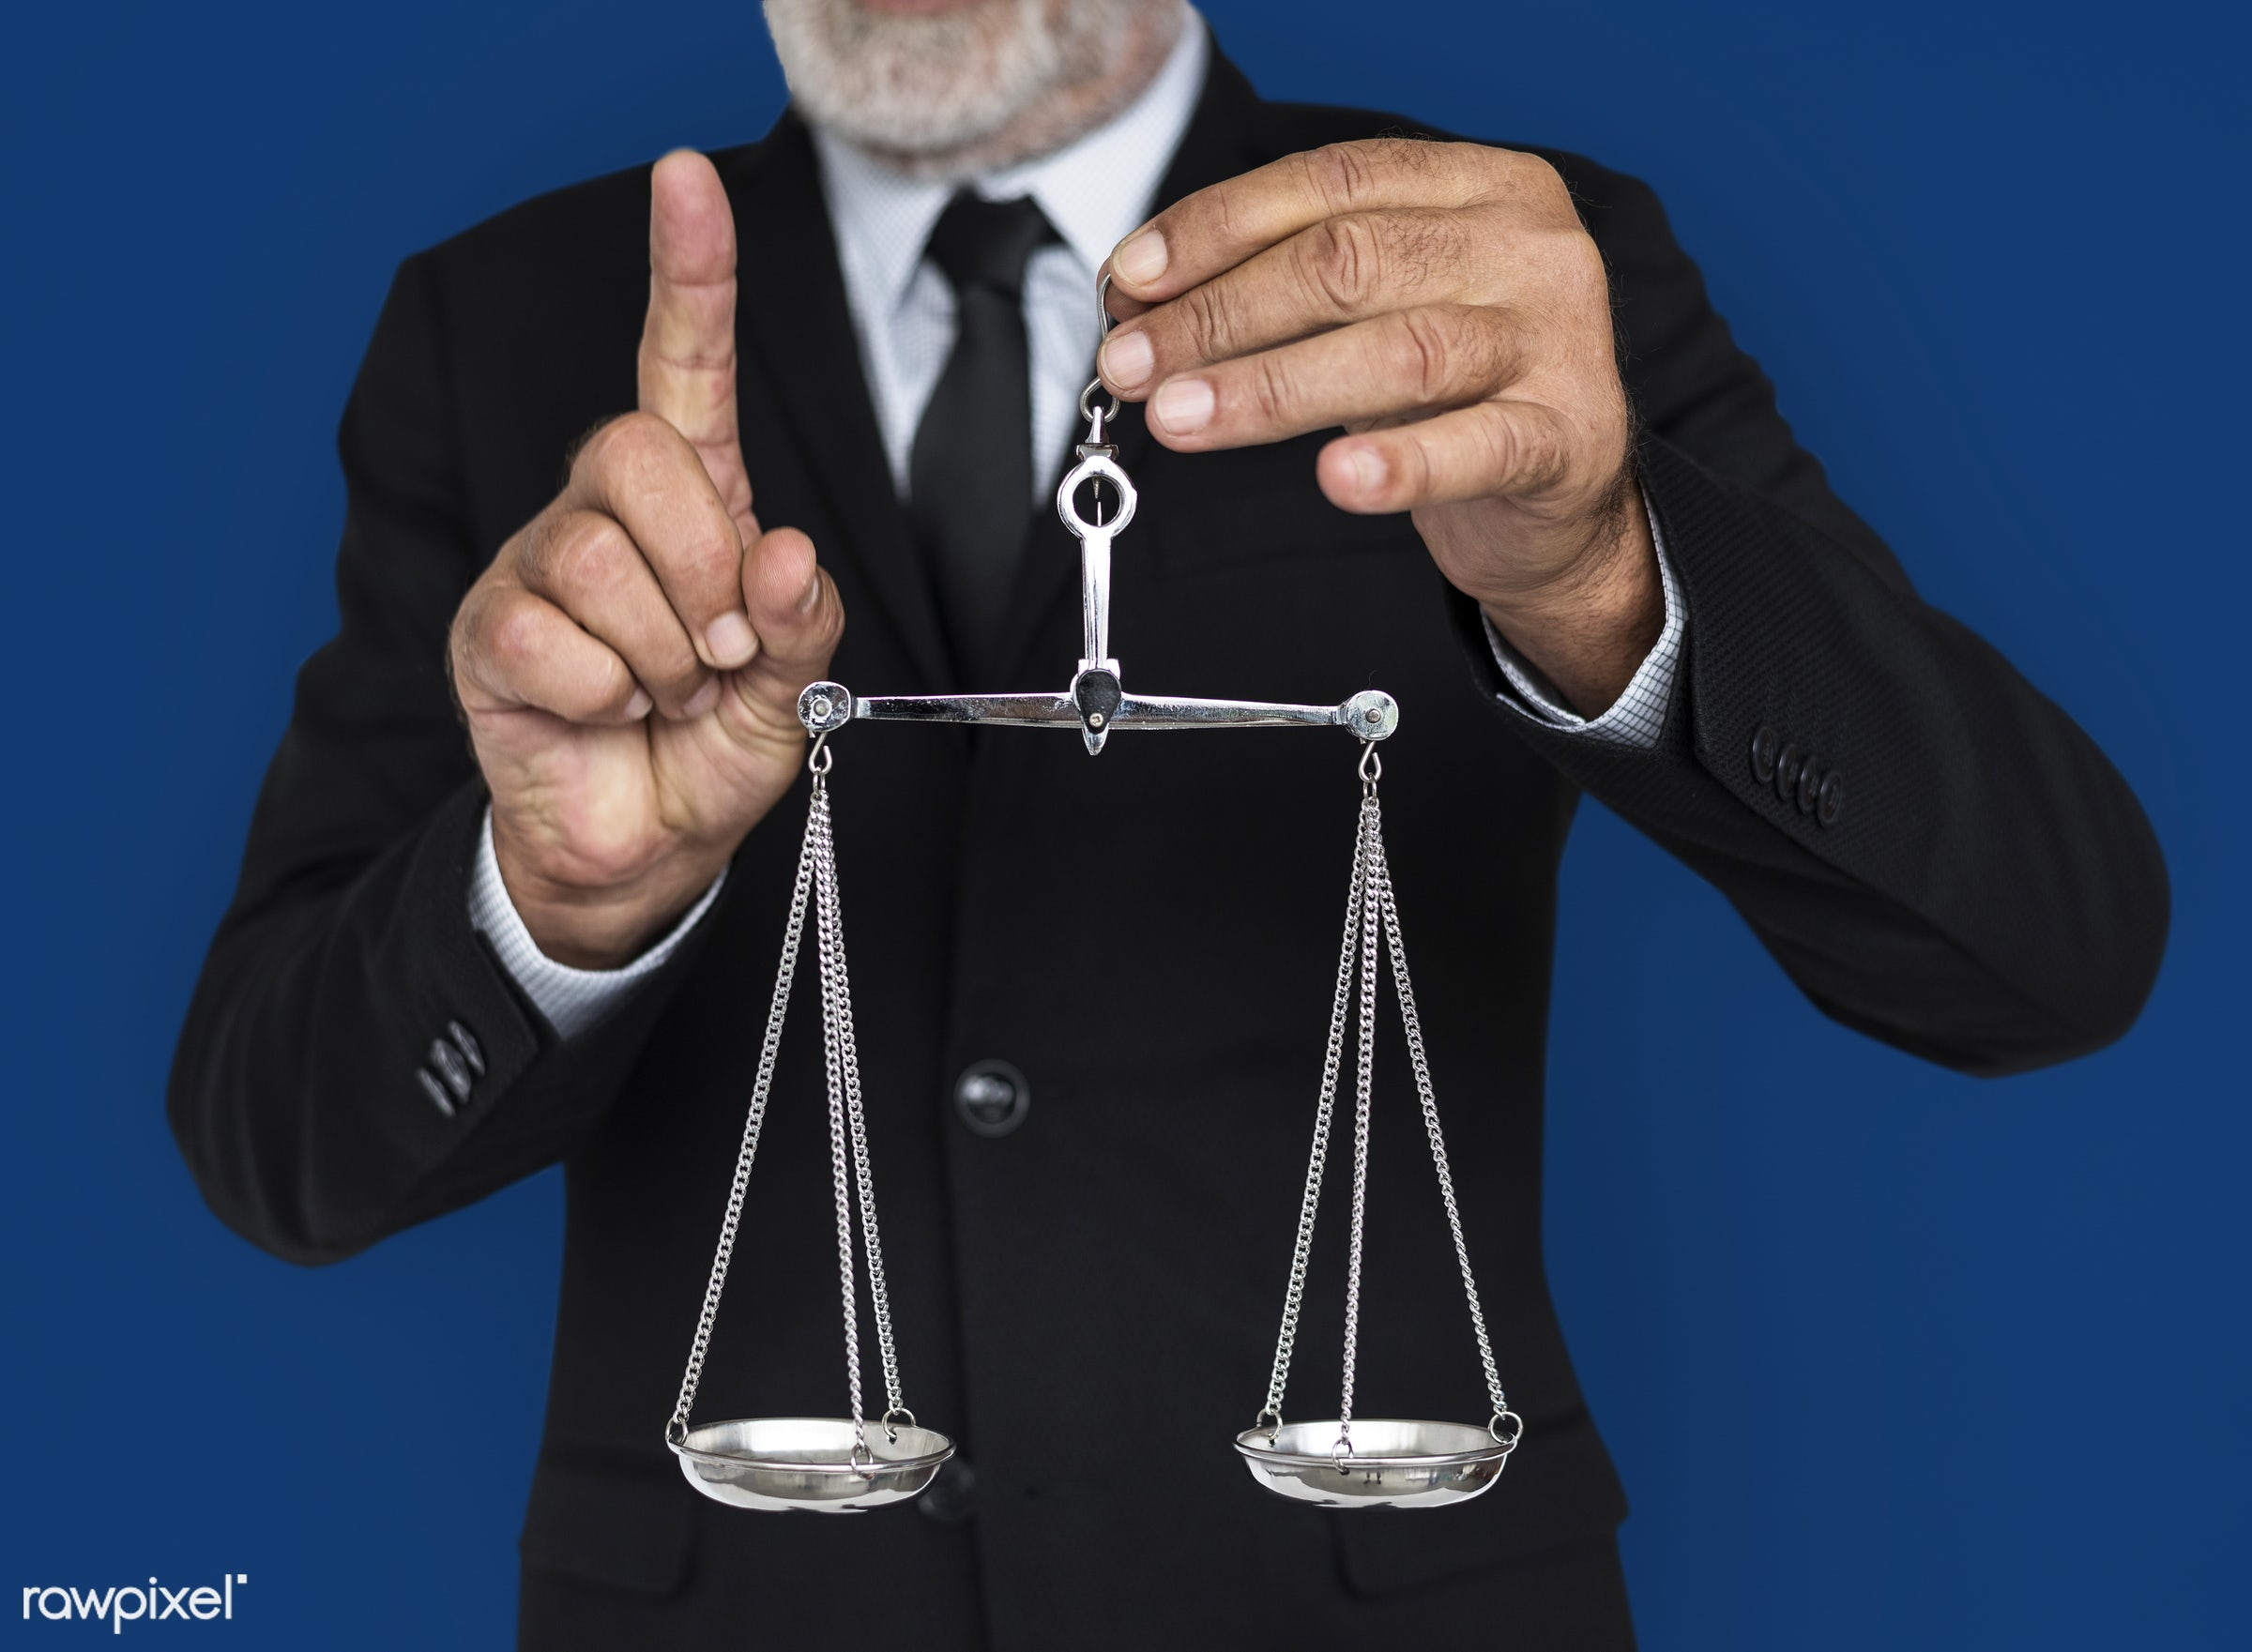 studio, expression, scale, person, business wear, people, business, caucasian, balance, justice scale, serious, man, law,...